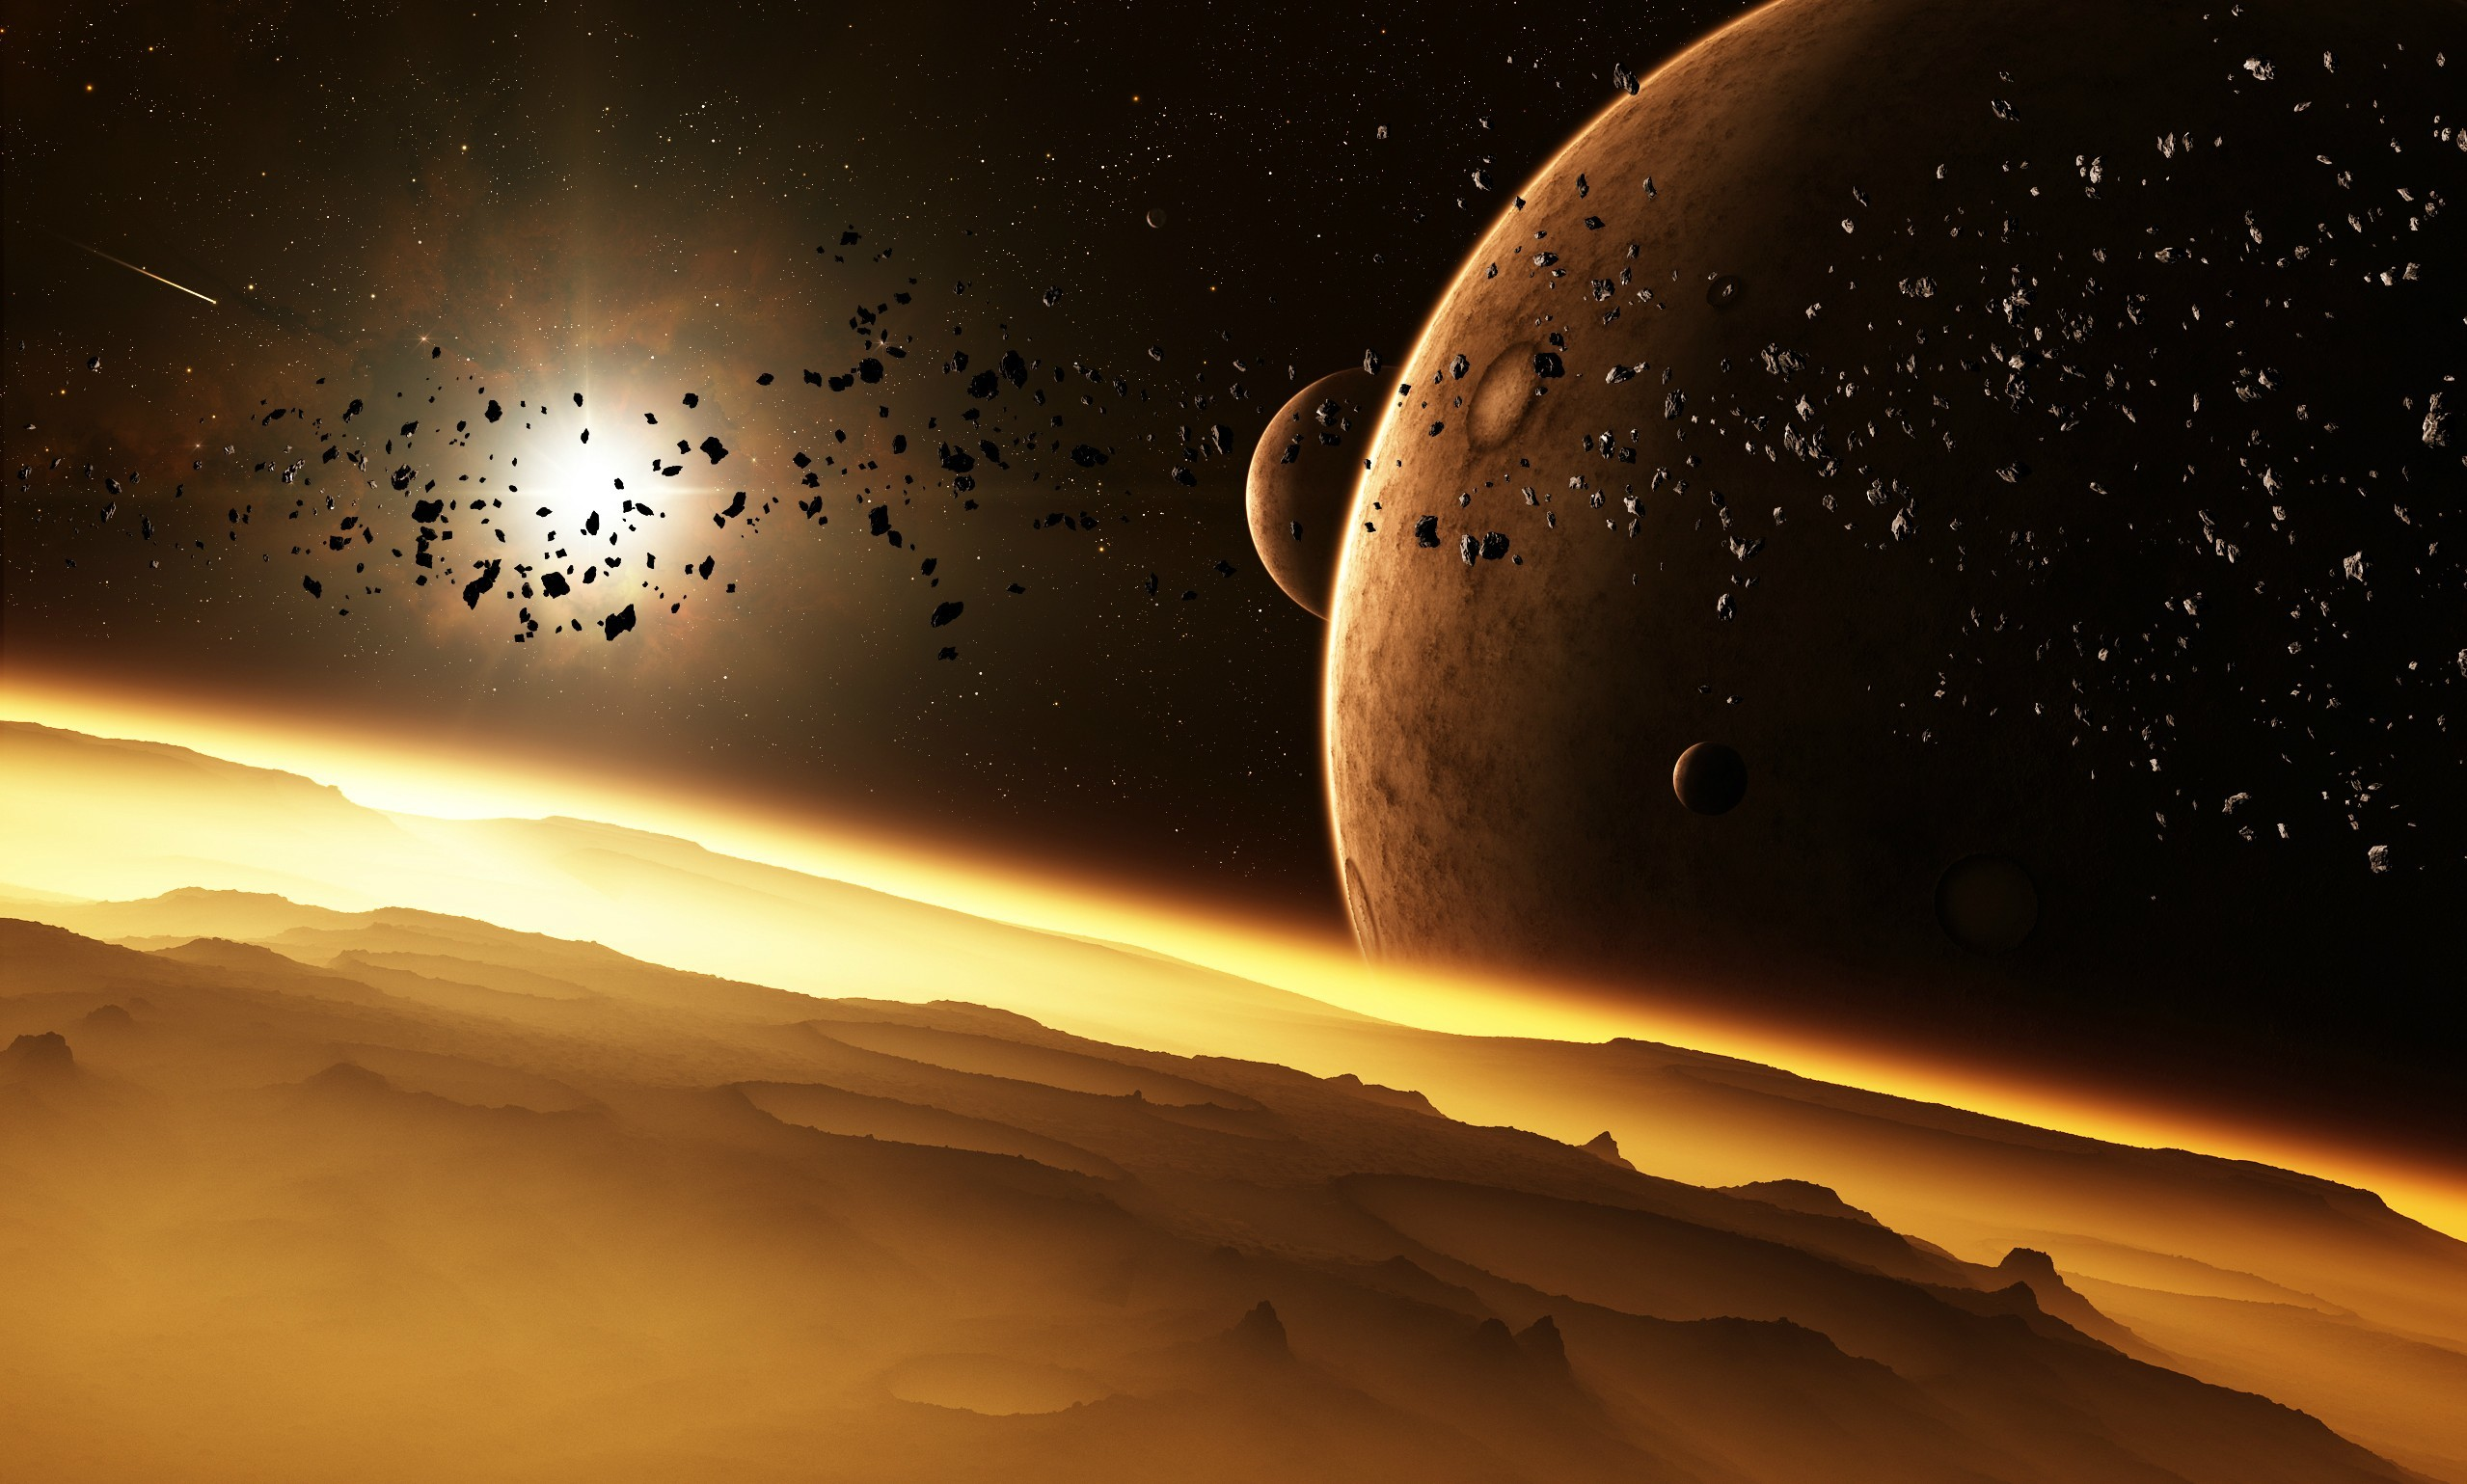 outer space Stars planets HD Wallpaper